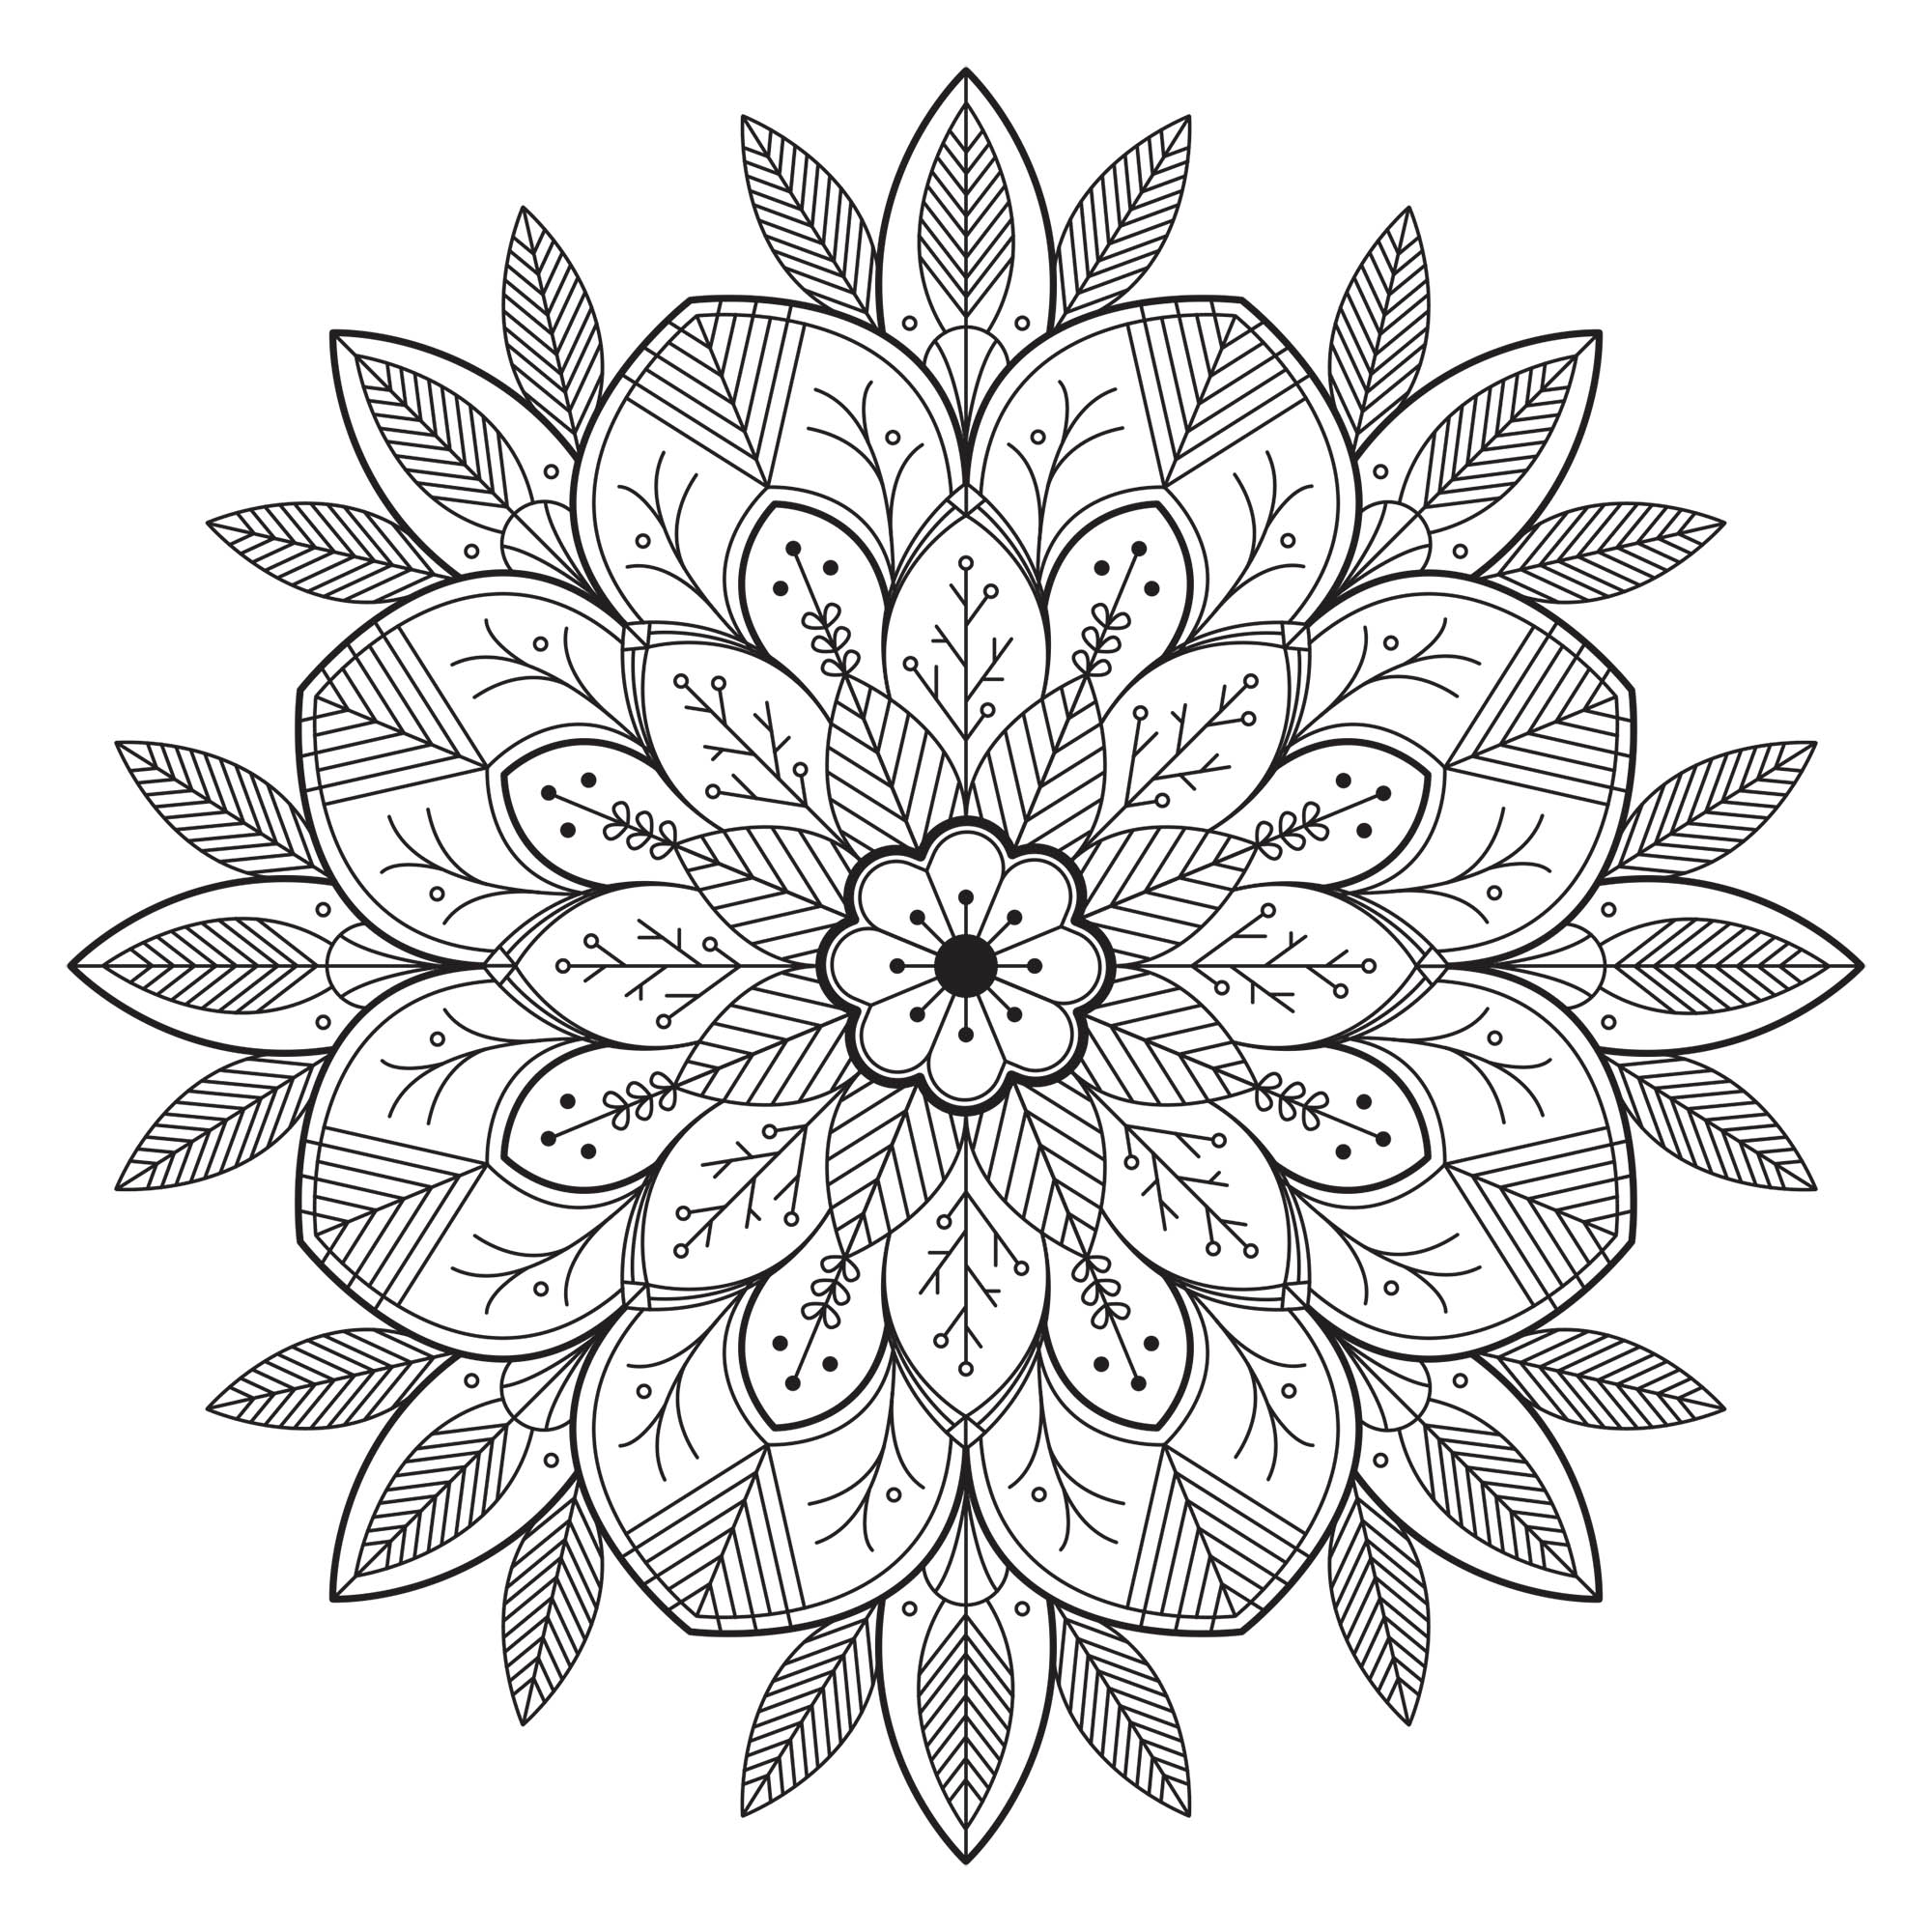 Simple Mandala with leaves and flowers. From the website Gifts.com